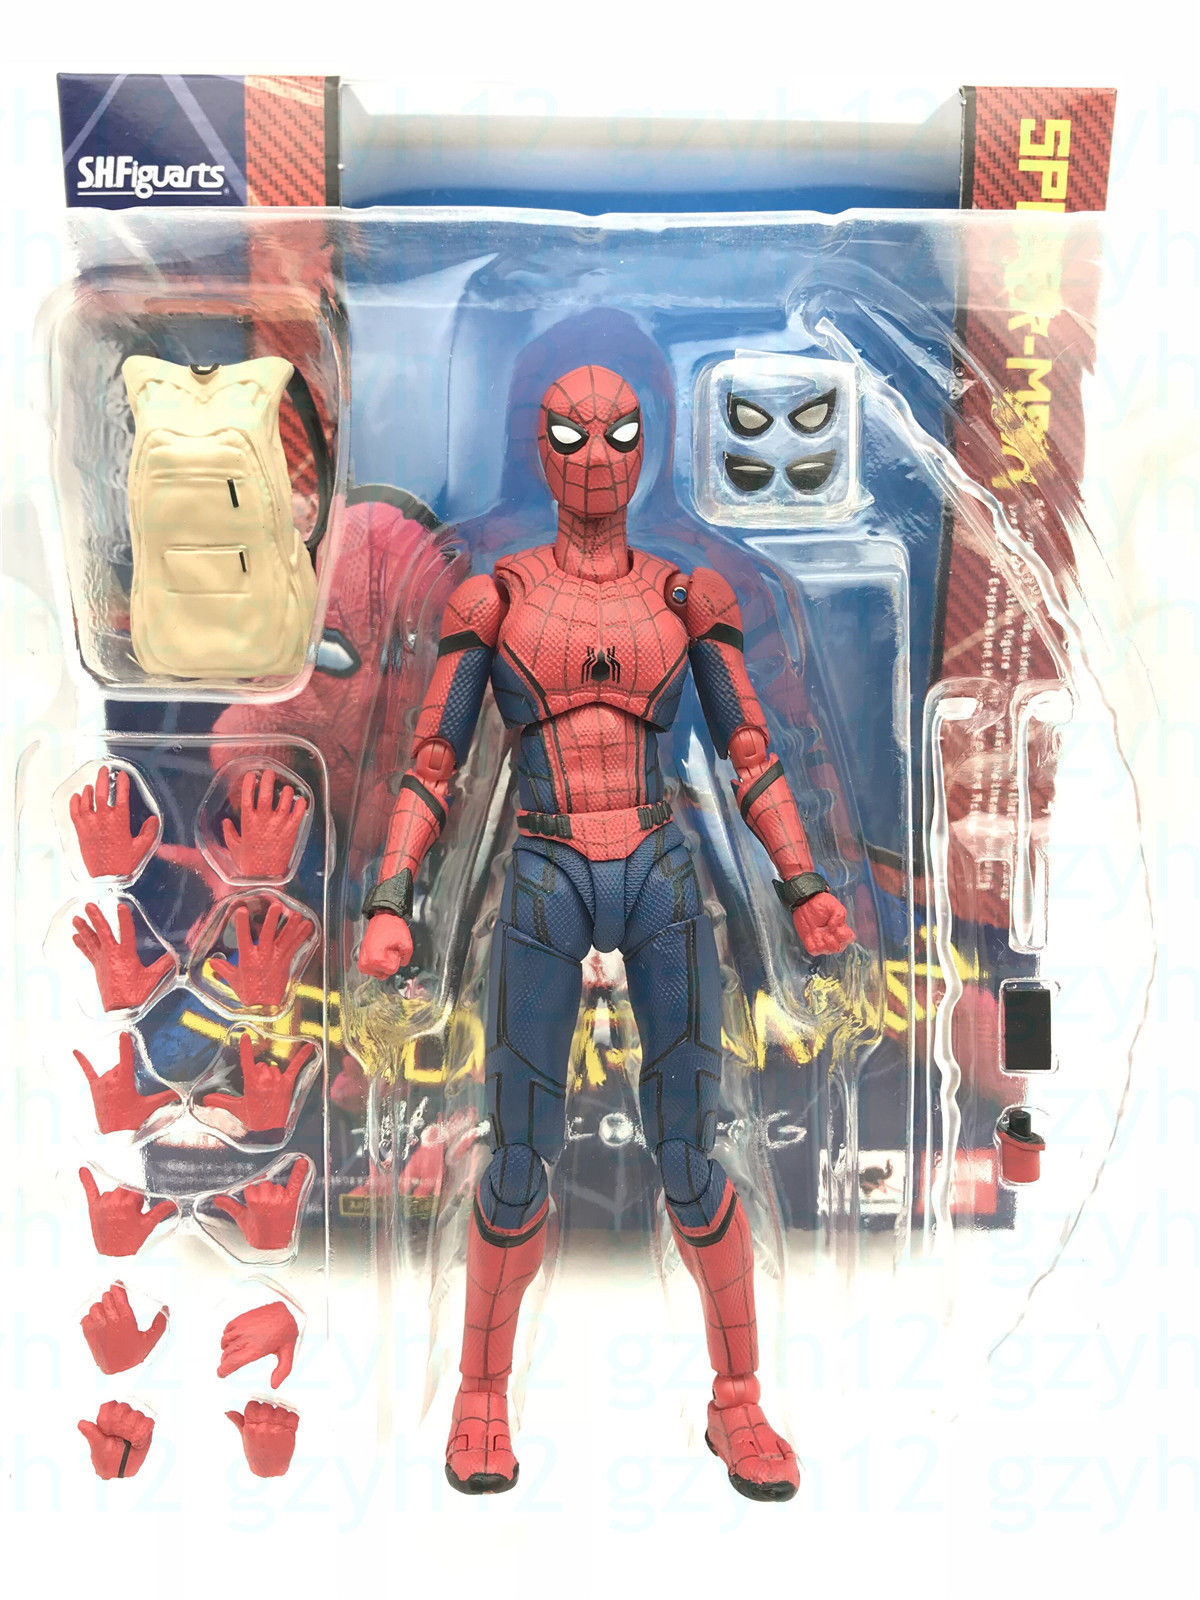 Shfiguarts Spiderman Homecoming Action Figure 150mm SHF Anime Spider-man Homecoming Collectible Model Doll Toy Shfiguarts